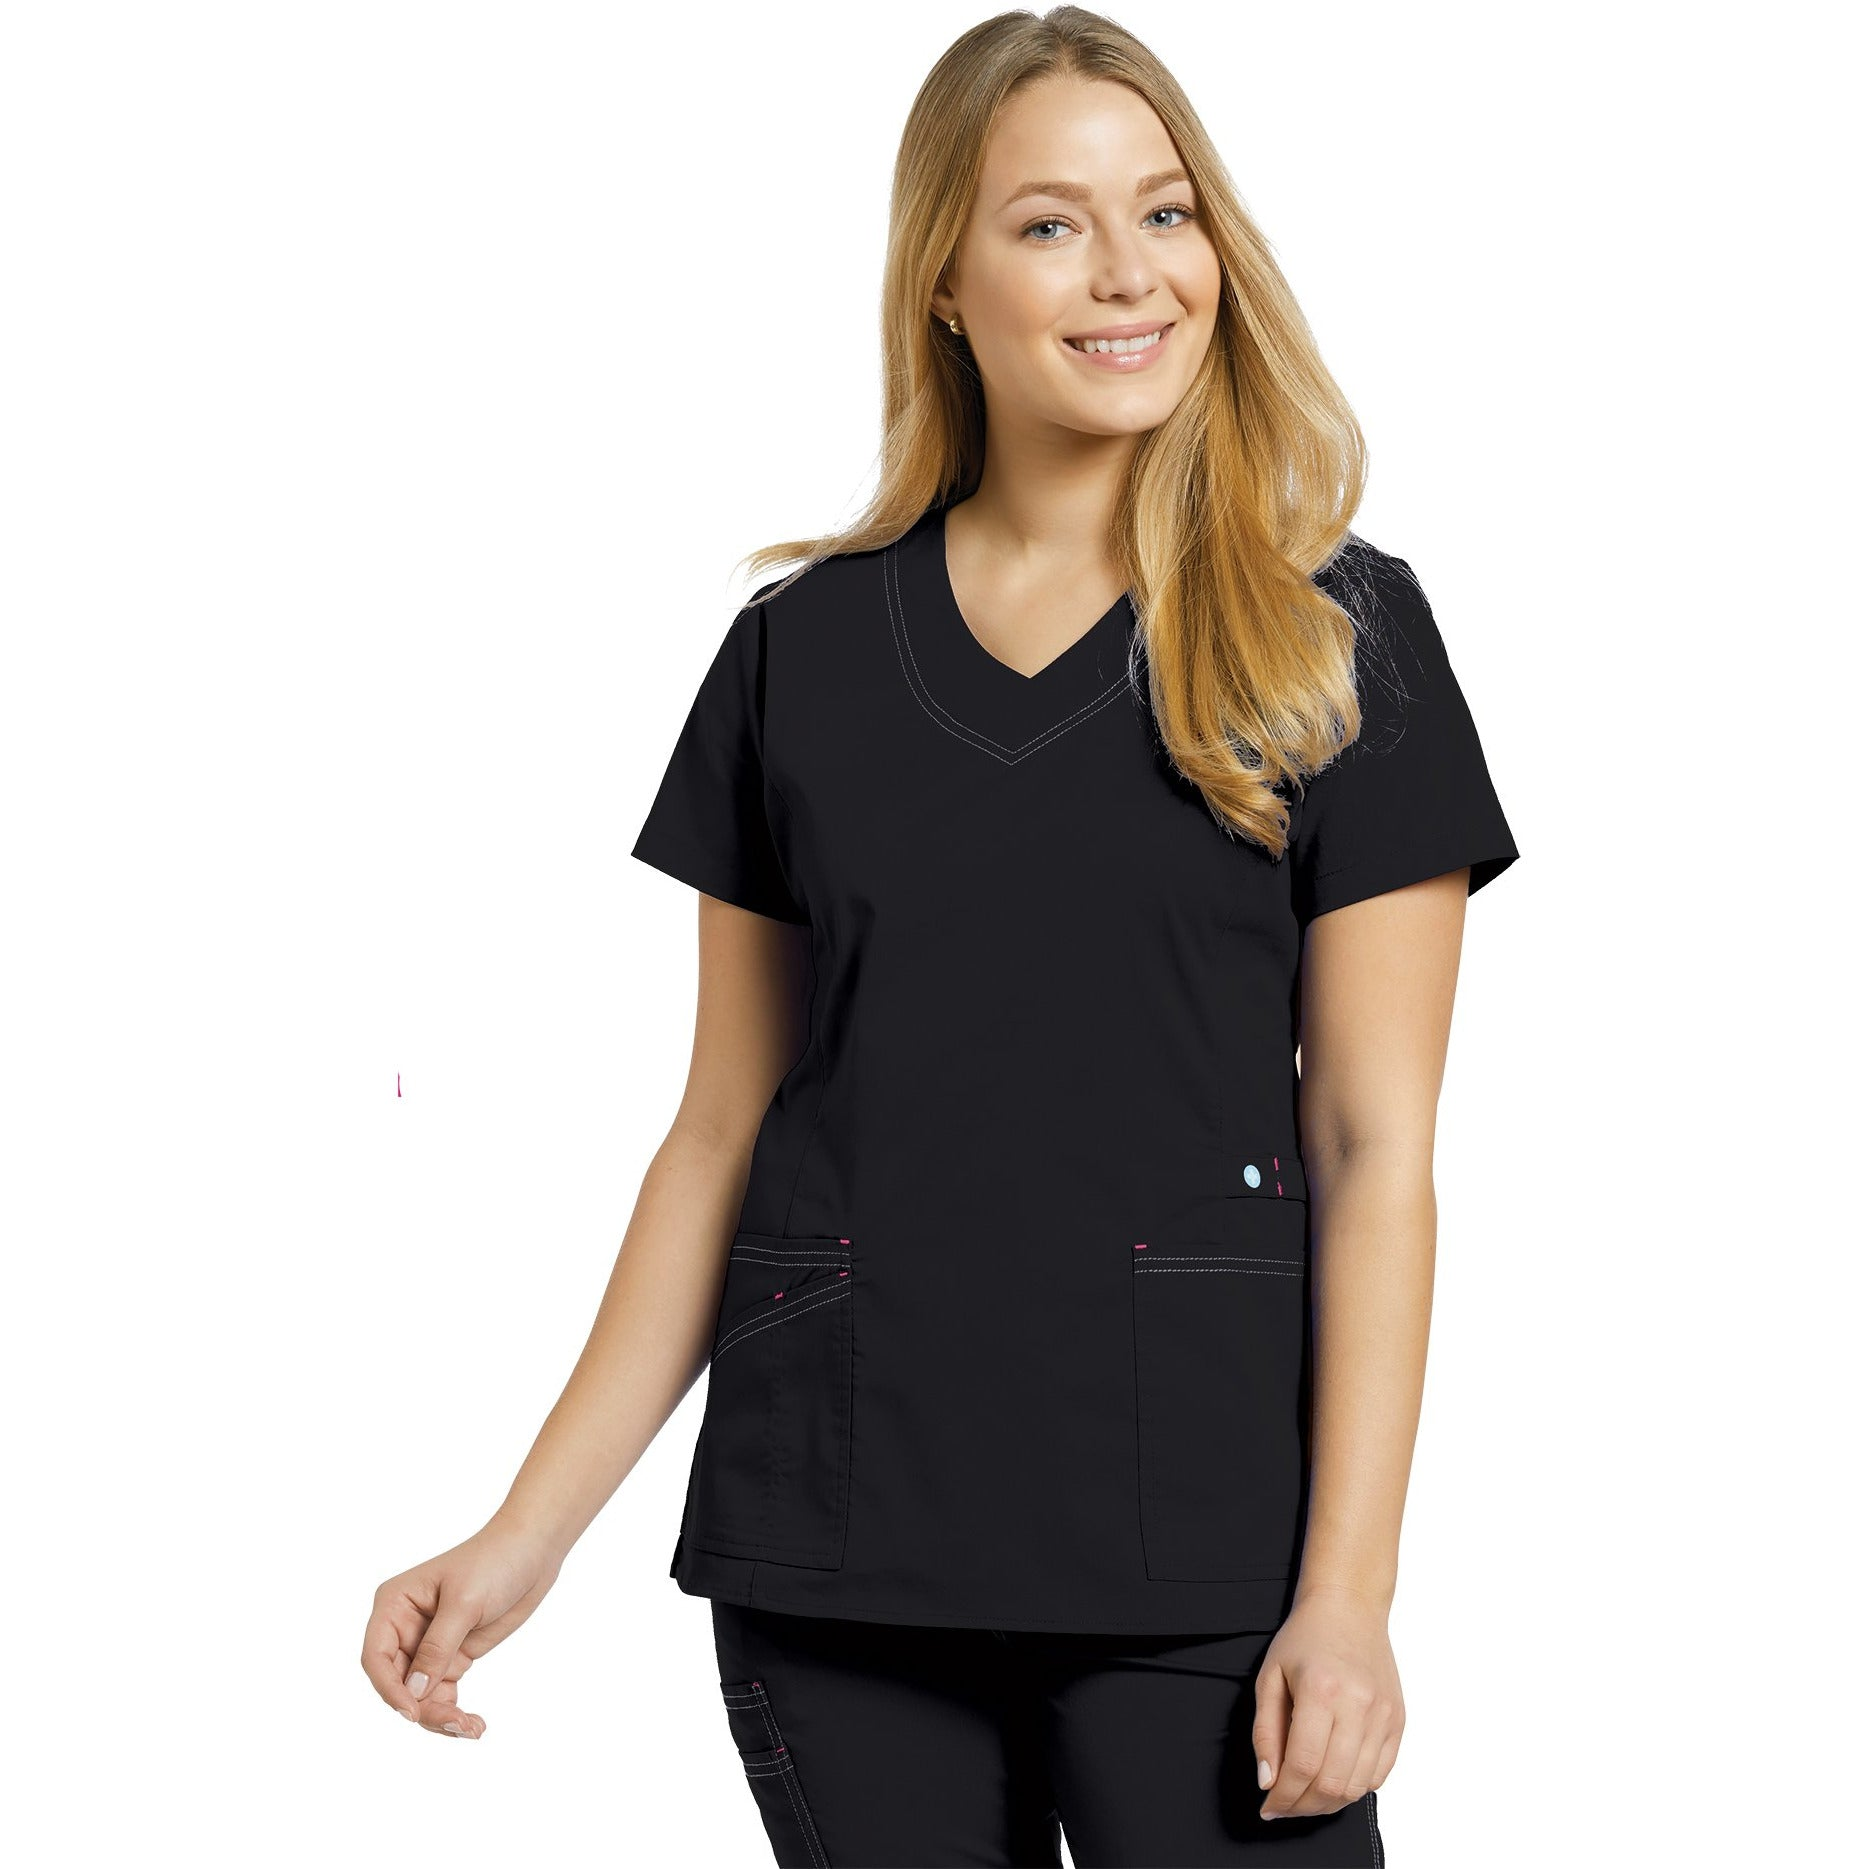 741 Curved V-neck Top with Contrast Stitching